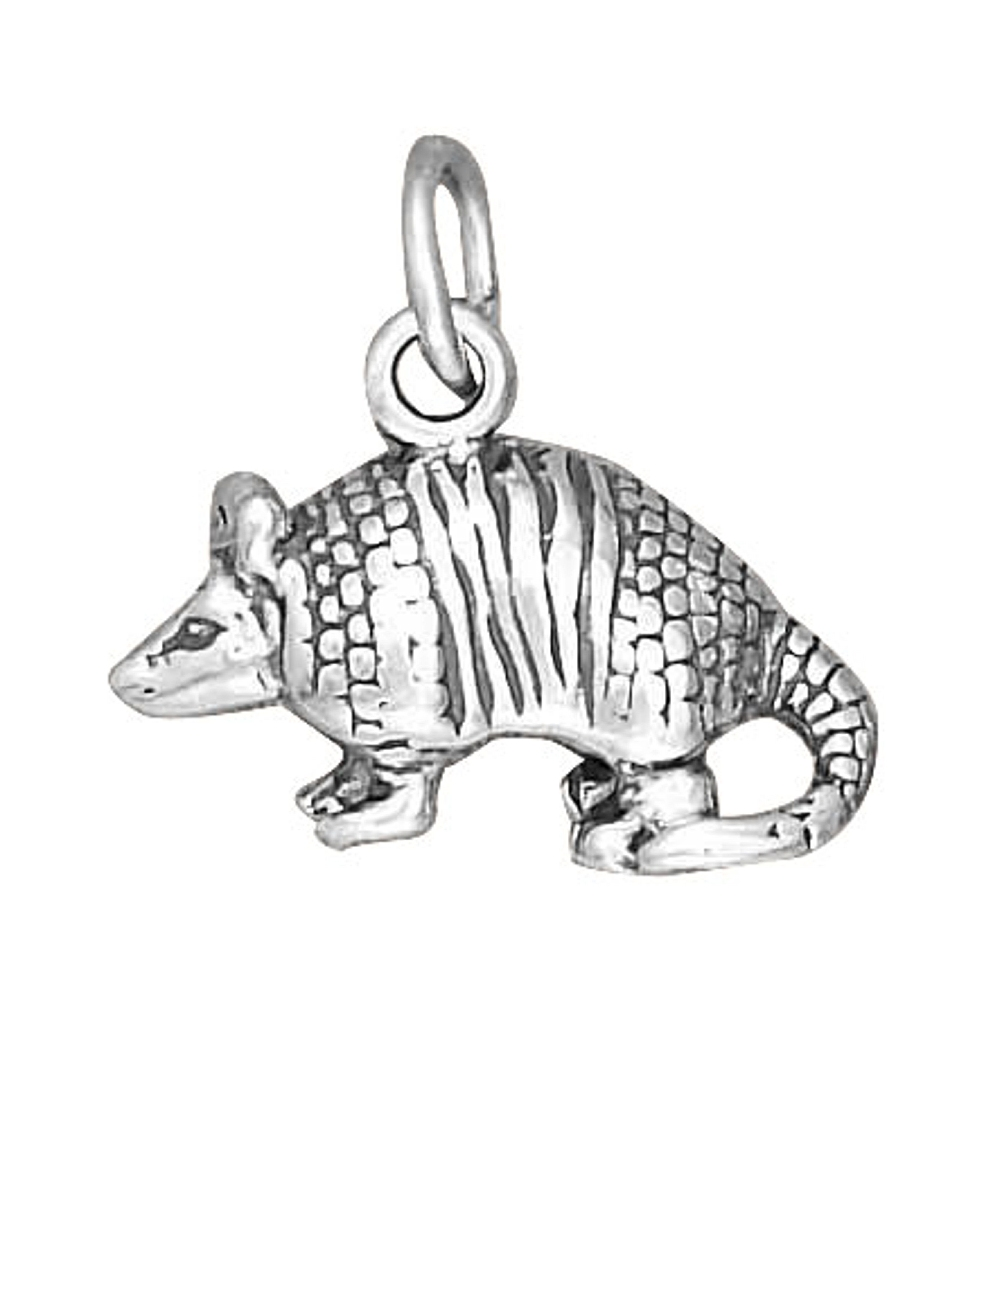 Sterling Silver 7 4.5mm Charm Bracelet With Attached 3D Armadillo Charm